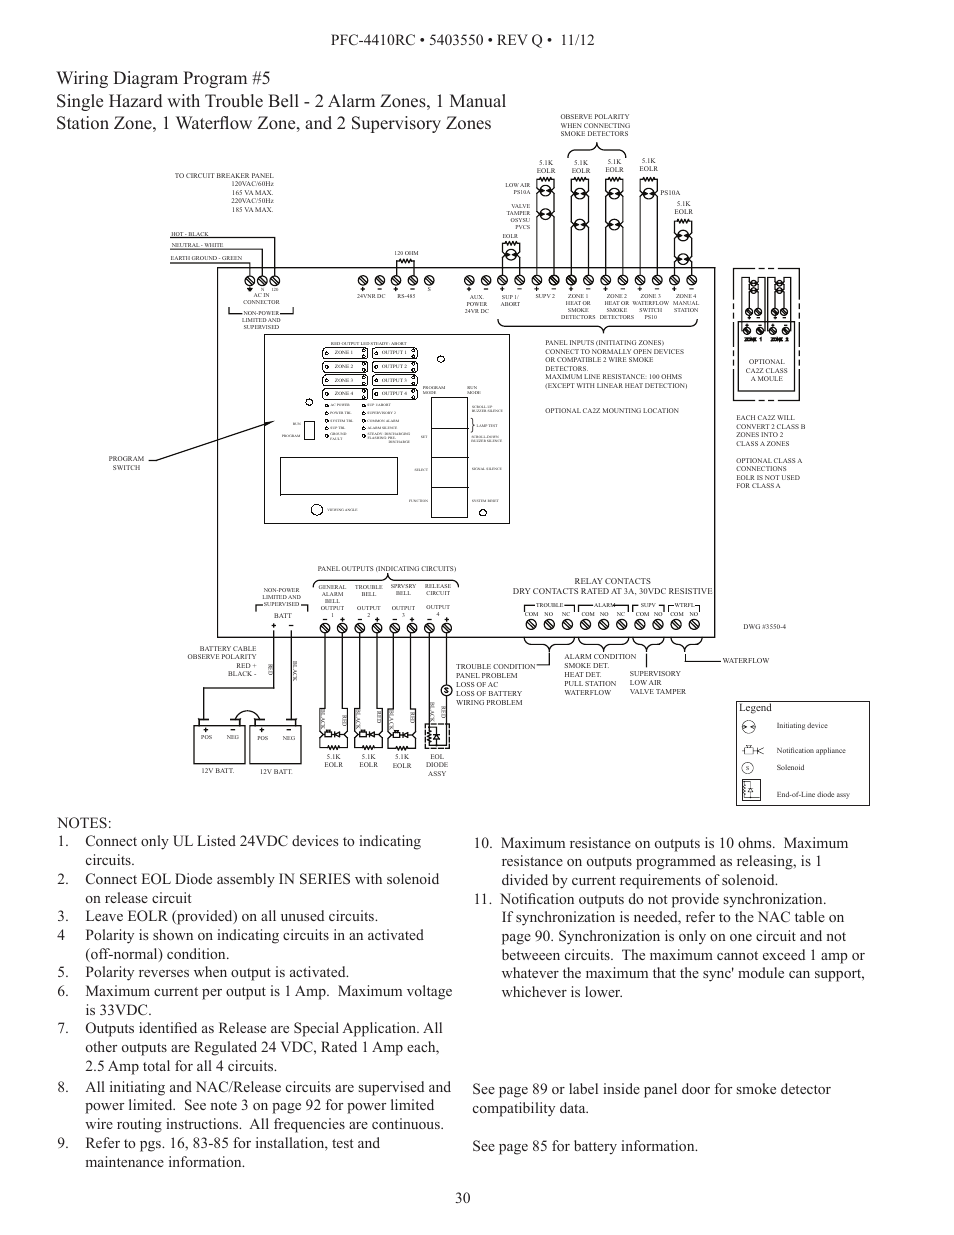 potter pfc 4410rc page30 potter pfc 4410rc user manual page 30 99 wiring diagram potter tamper switch at bayanpartner.co